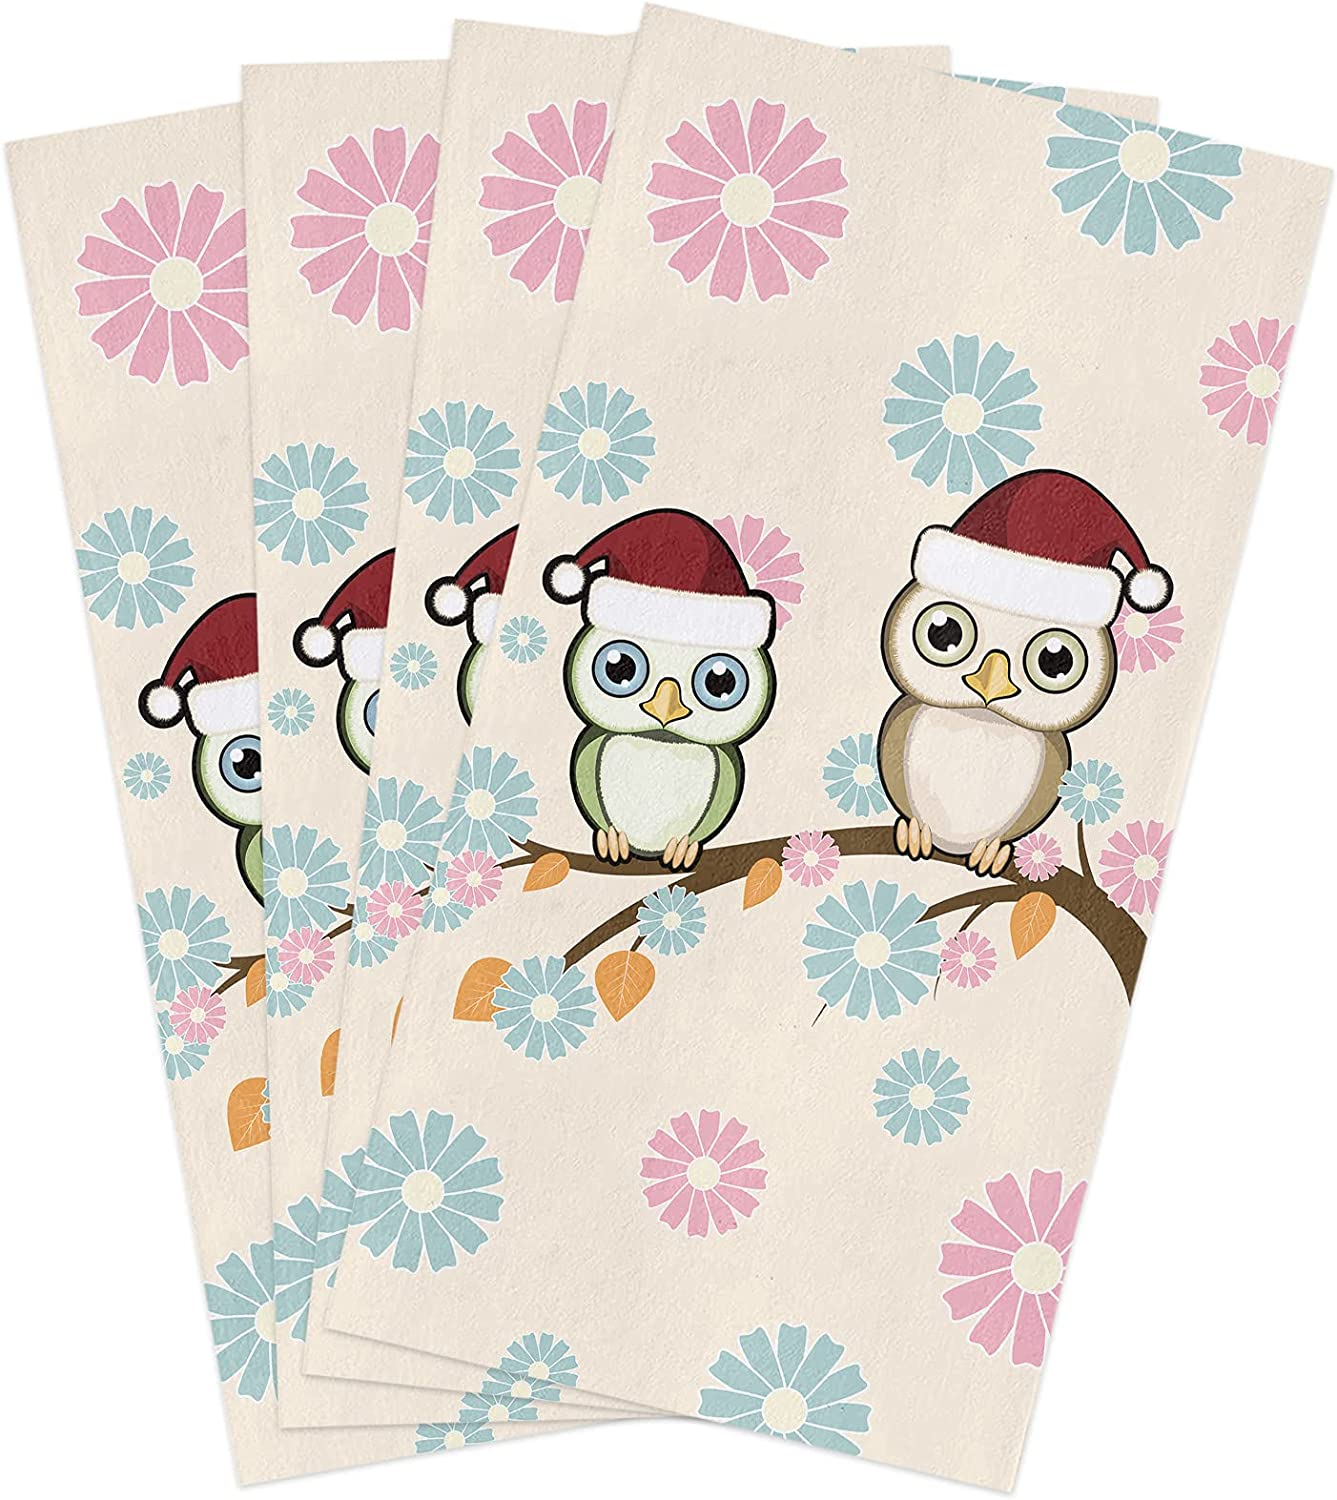 Microfiber Be super Soldering welcome Soft Kitchen Dish Towels Pack of Cu Theme 4 Christmas